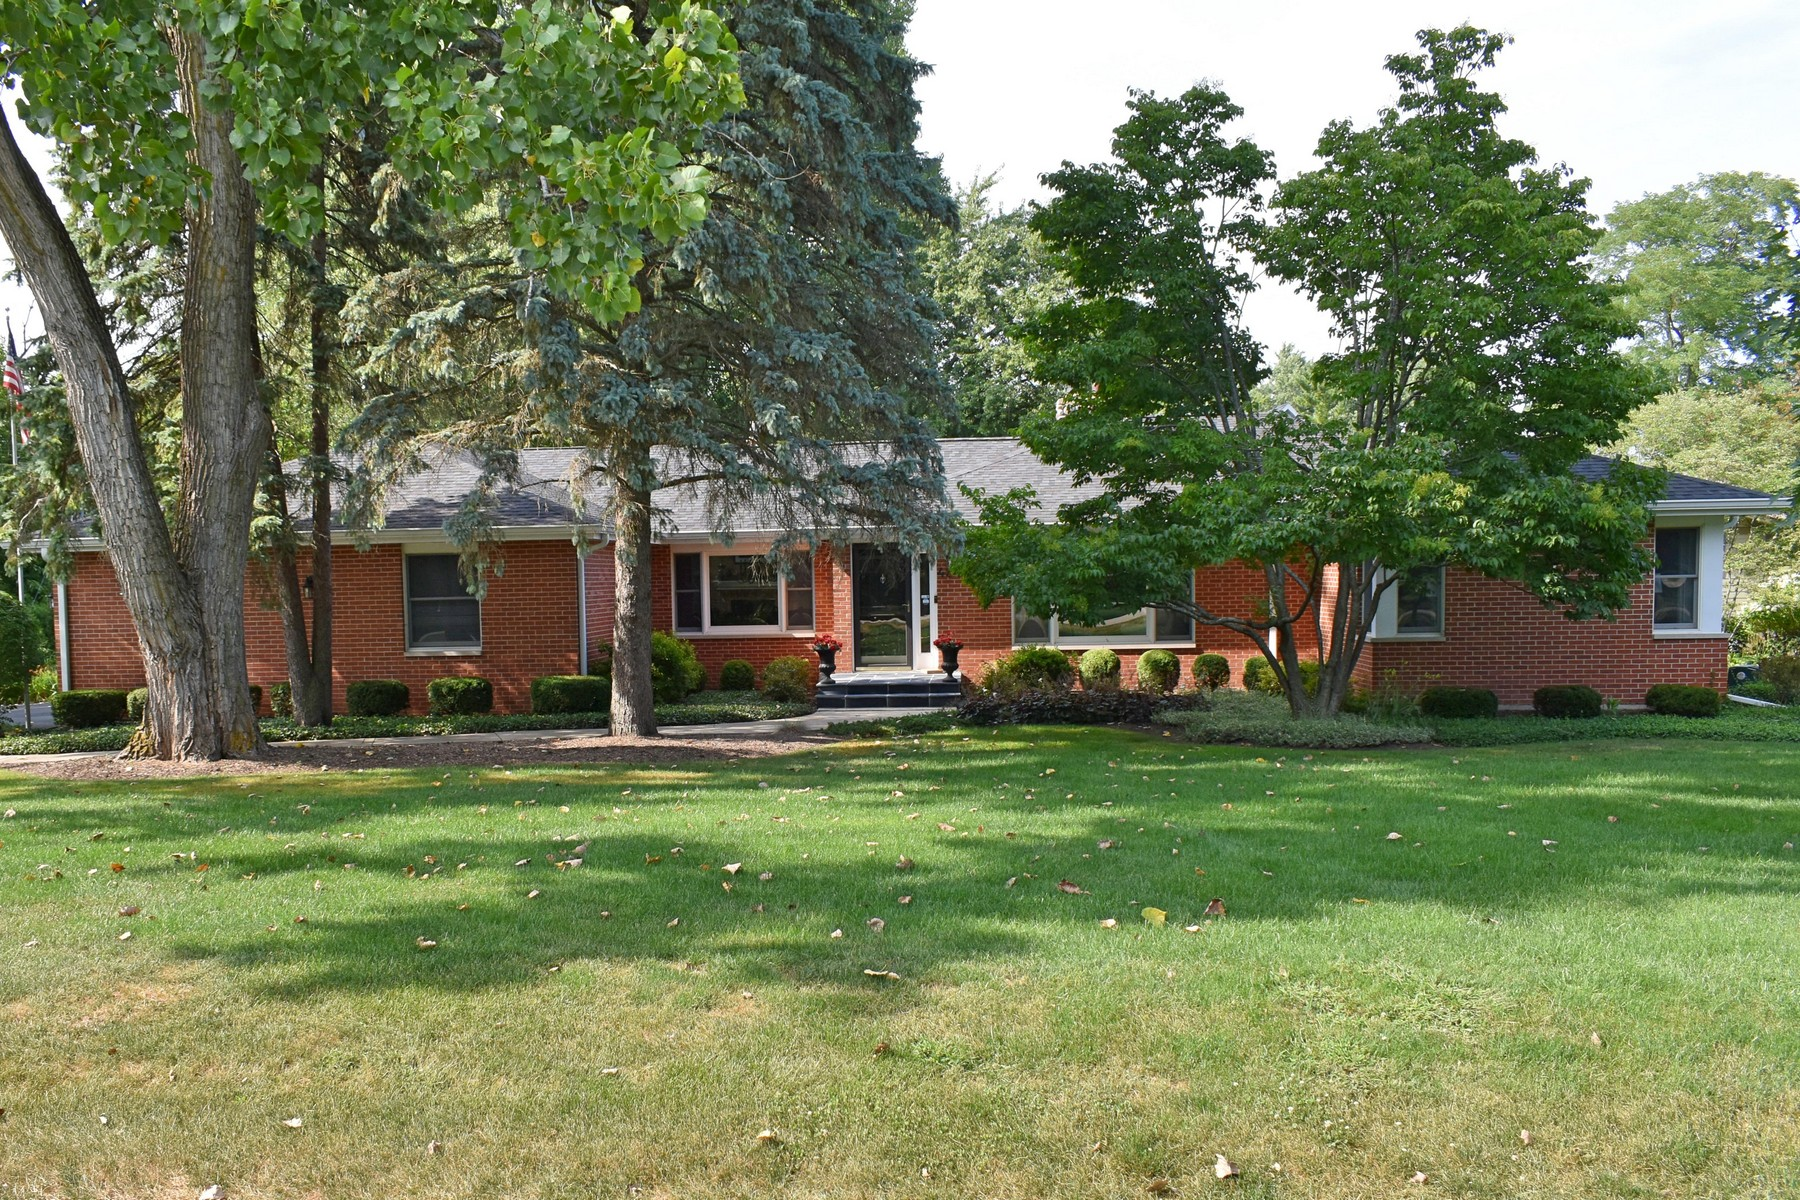 Single Family Homes für Verkauf beim Huge Brick Home on Large Corner Lot 454 Harvard Avenue, Barrington, Illinois 60010 Vereinigte Staaten